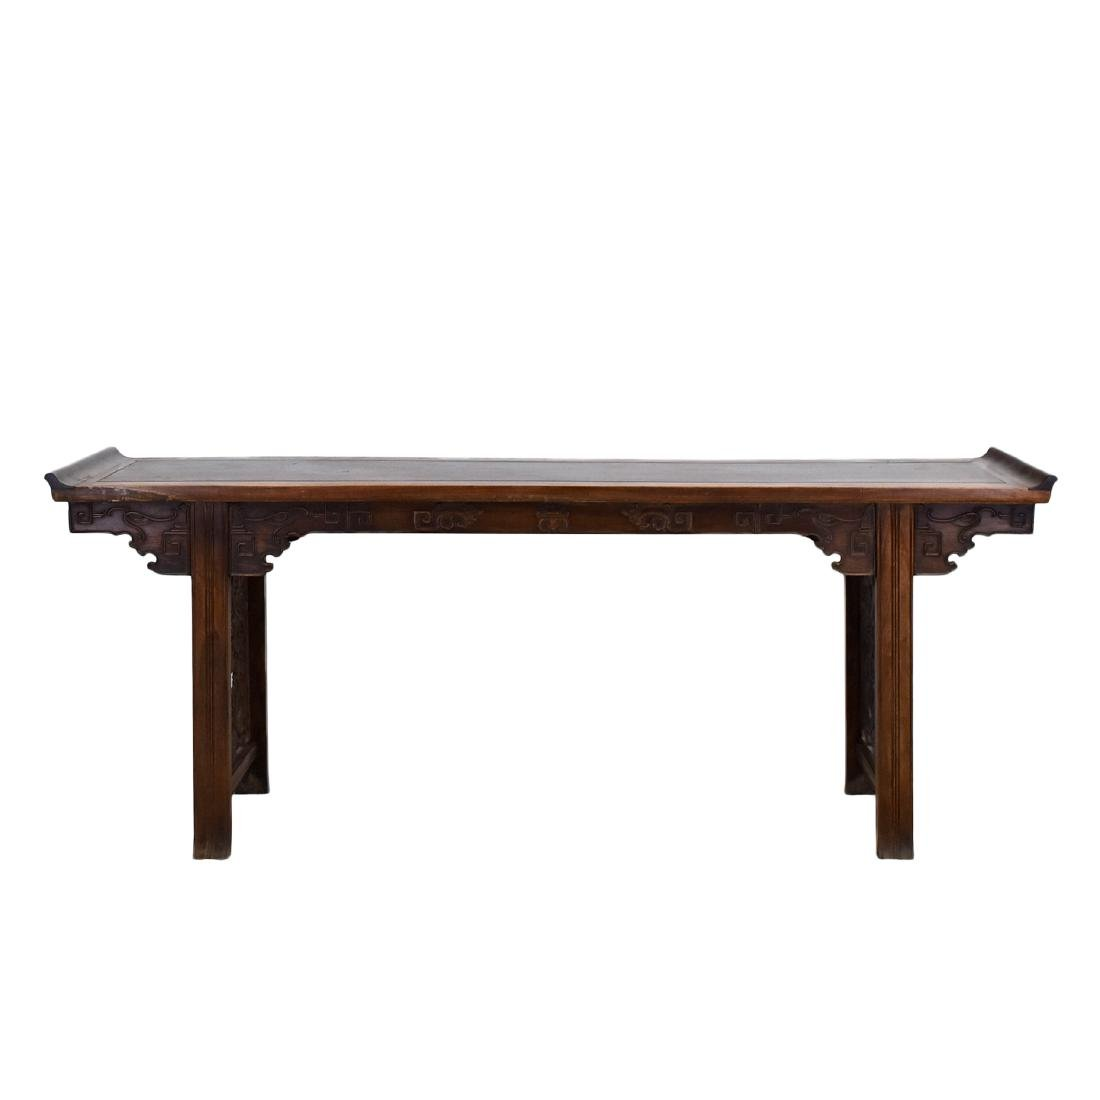 19TH C QING HUANGHUALI EVERTED ENDS ALTAR TABLE